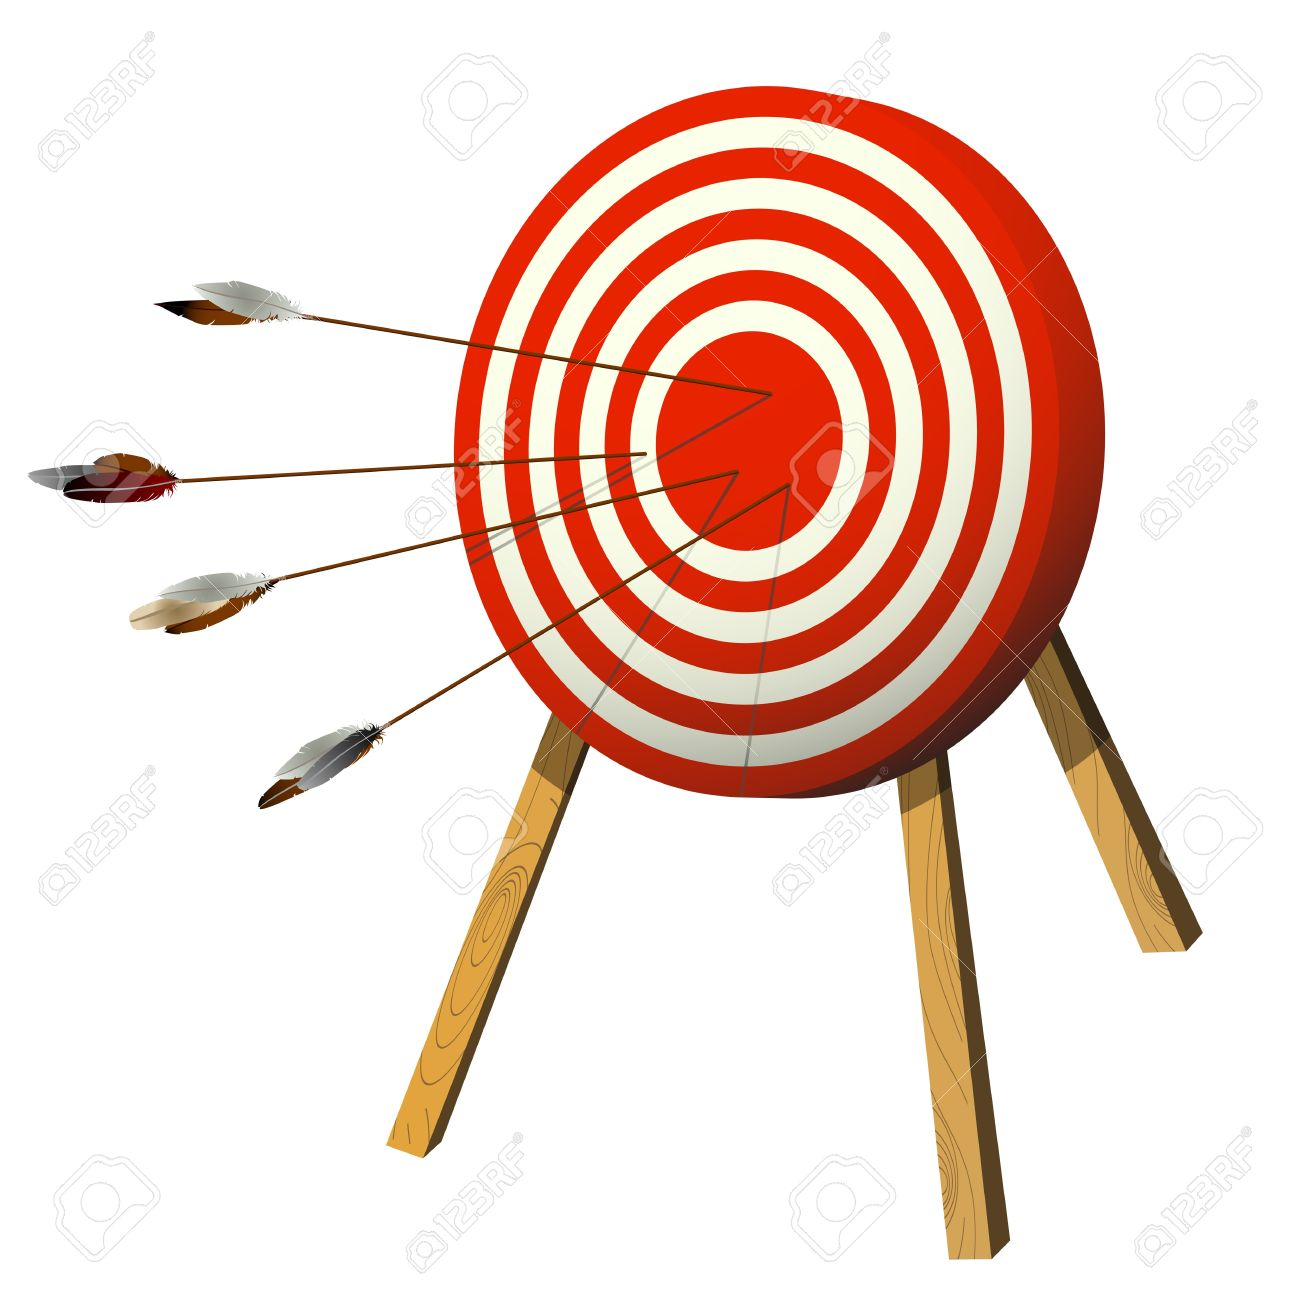 Arrows with isolated objects. Bow and arrow target clipart